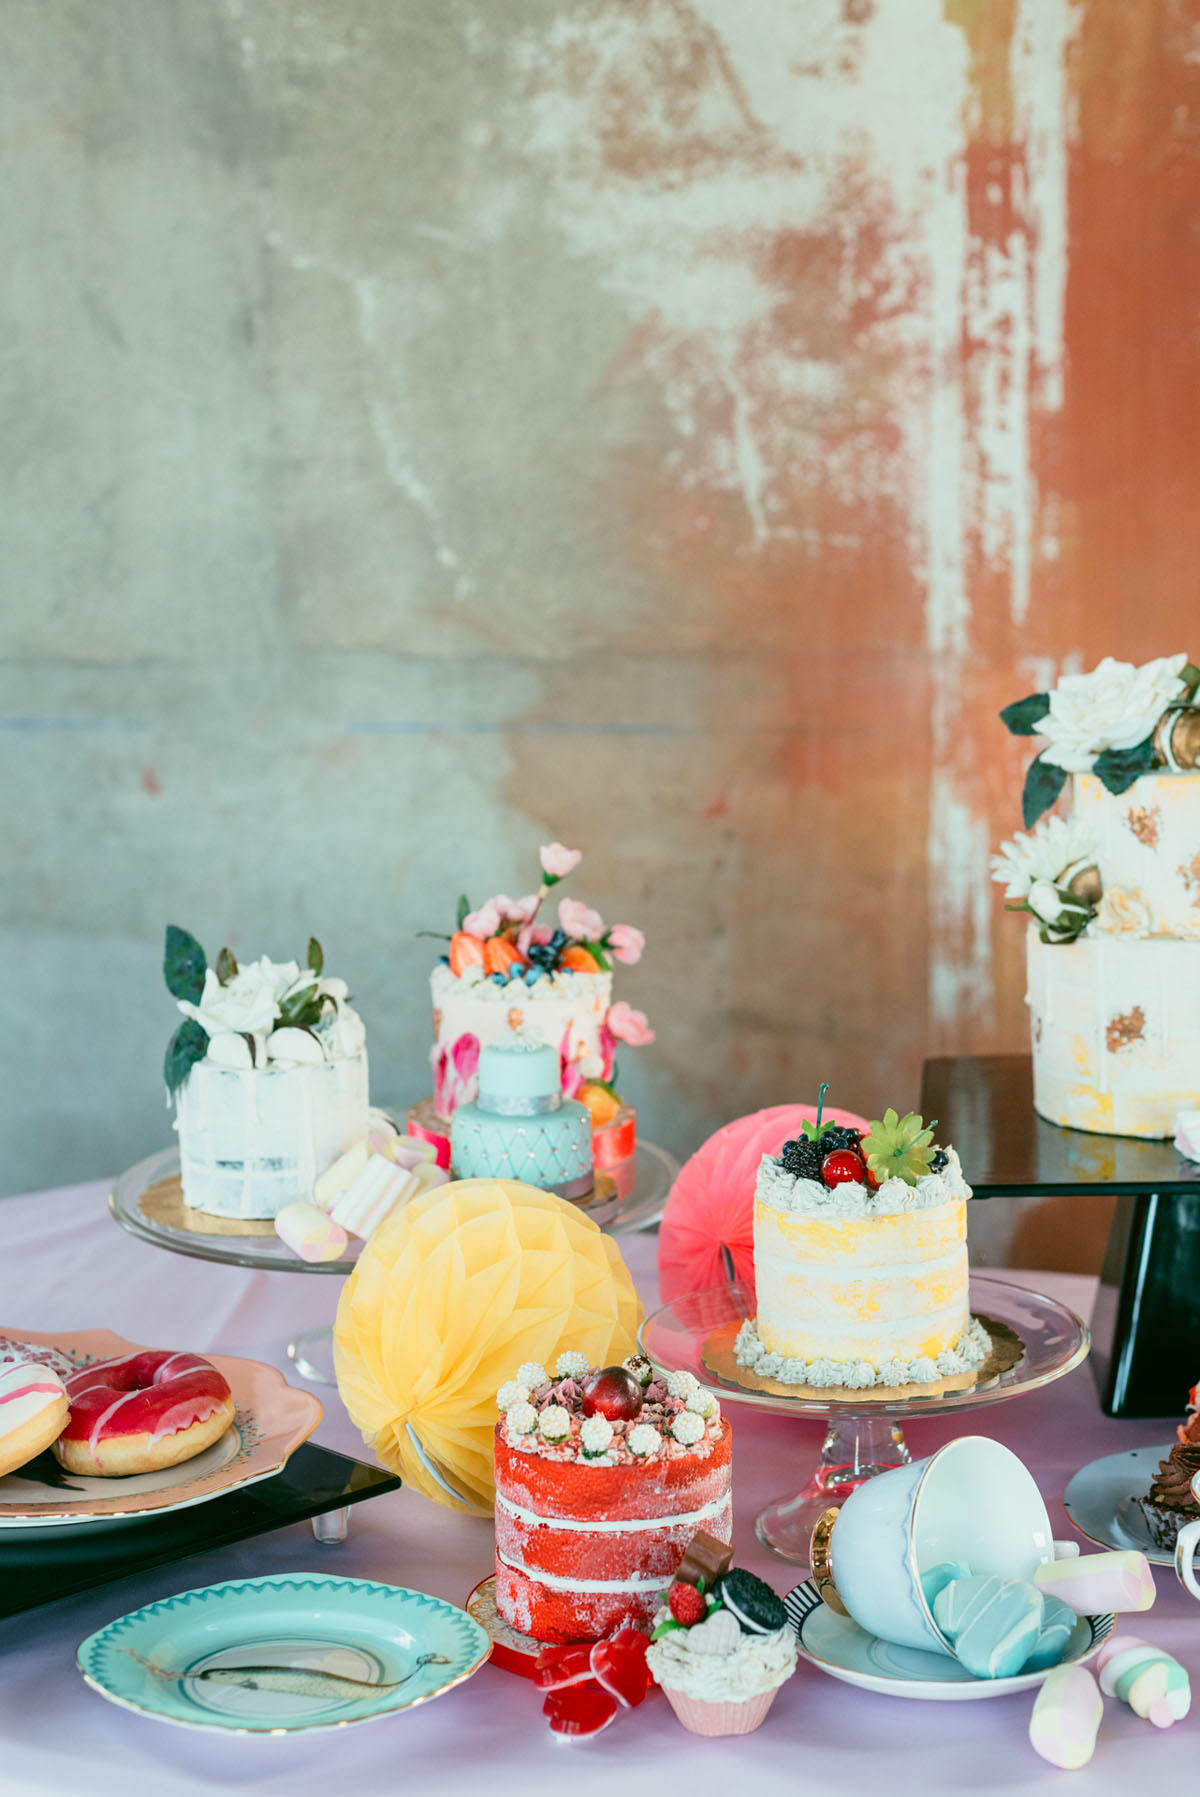 The wedding dessert table showed off adorable colorful cakes, donuts and other desserts